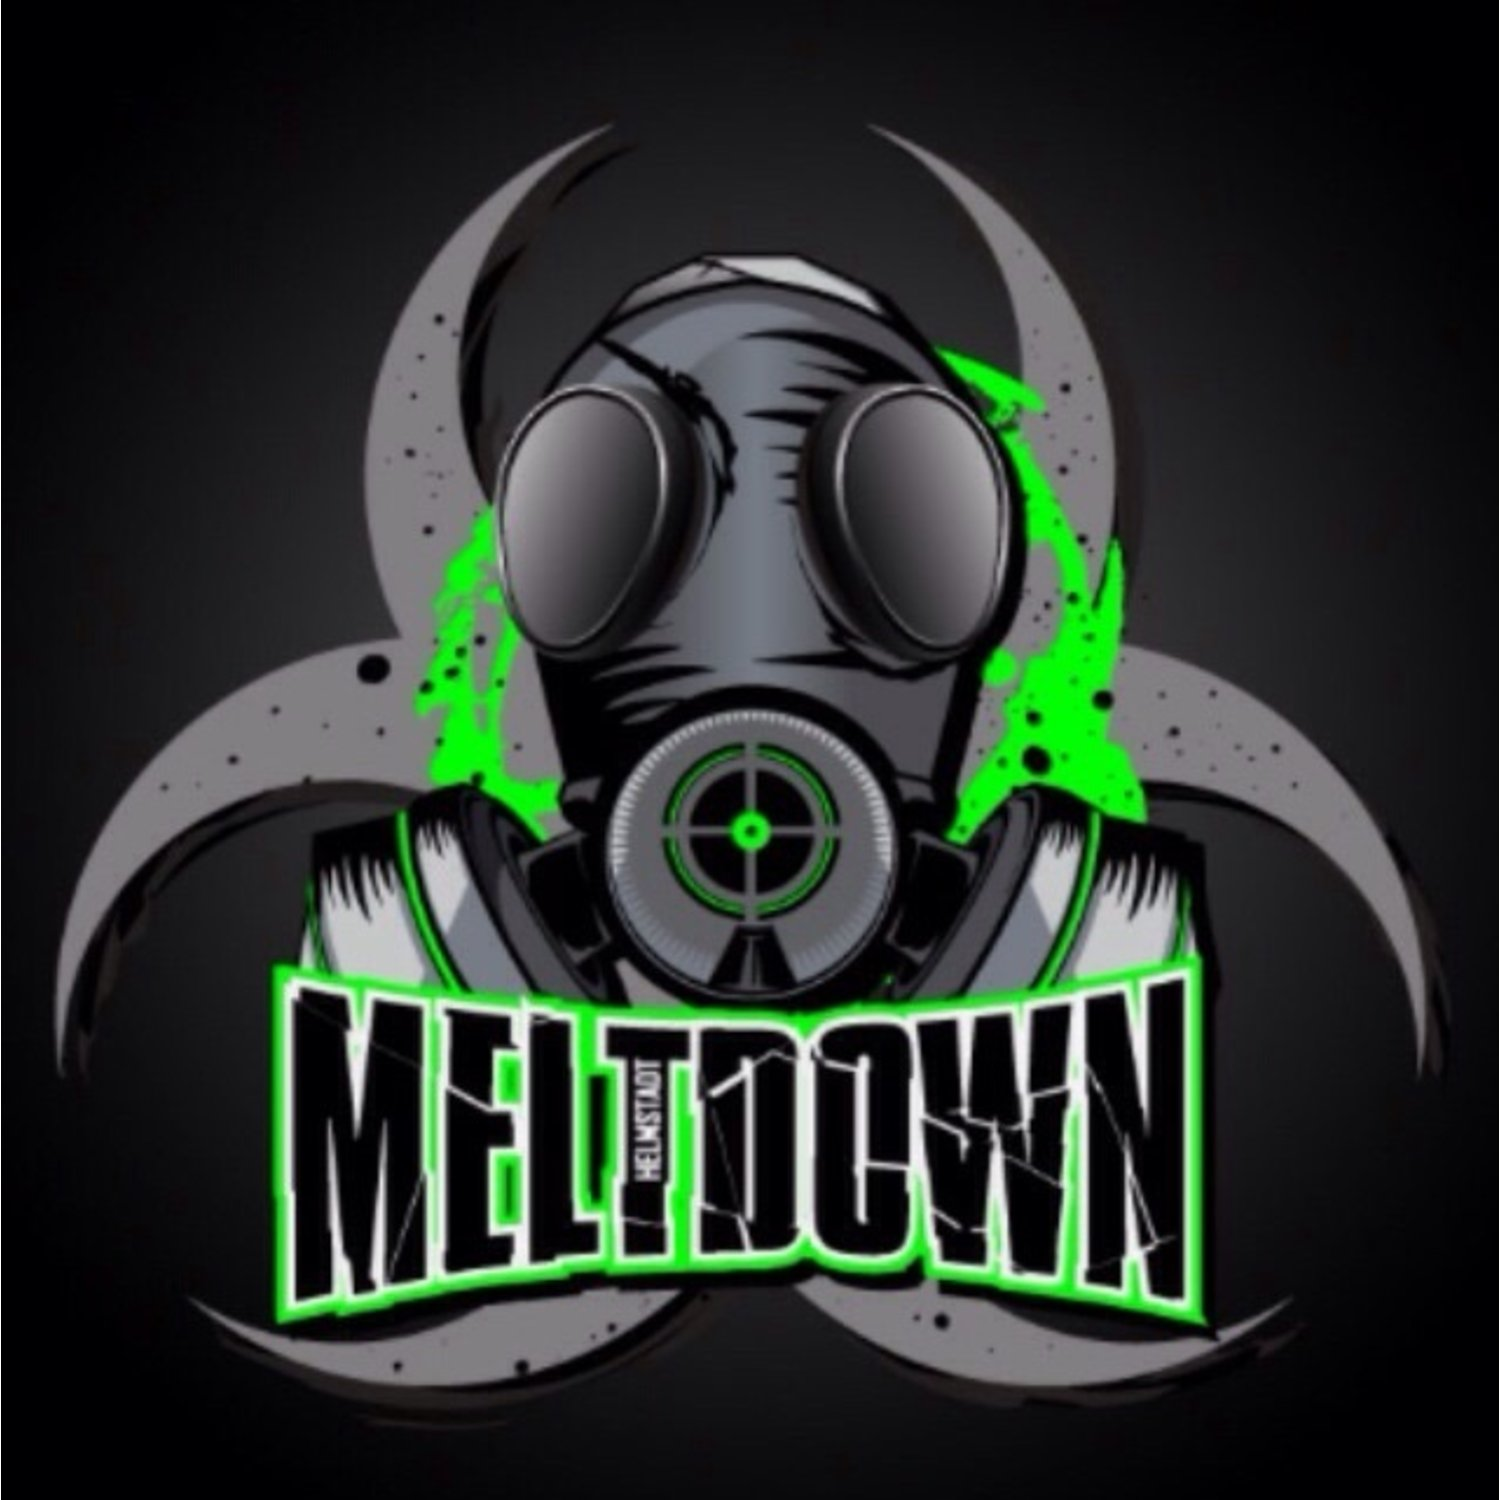 Helmstadt meltdown deutsche paintball liga for Dt bundesliga tabelle